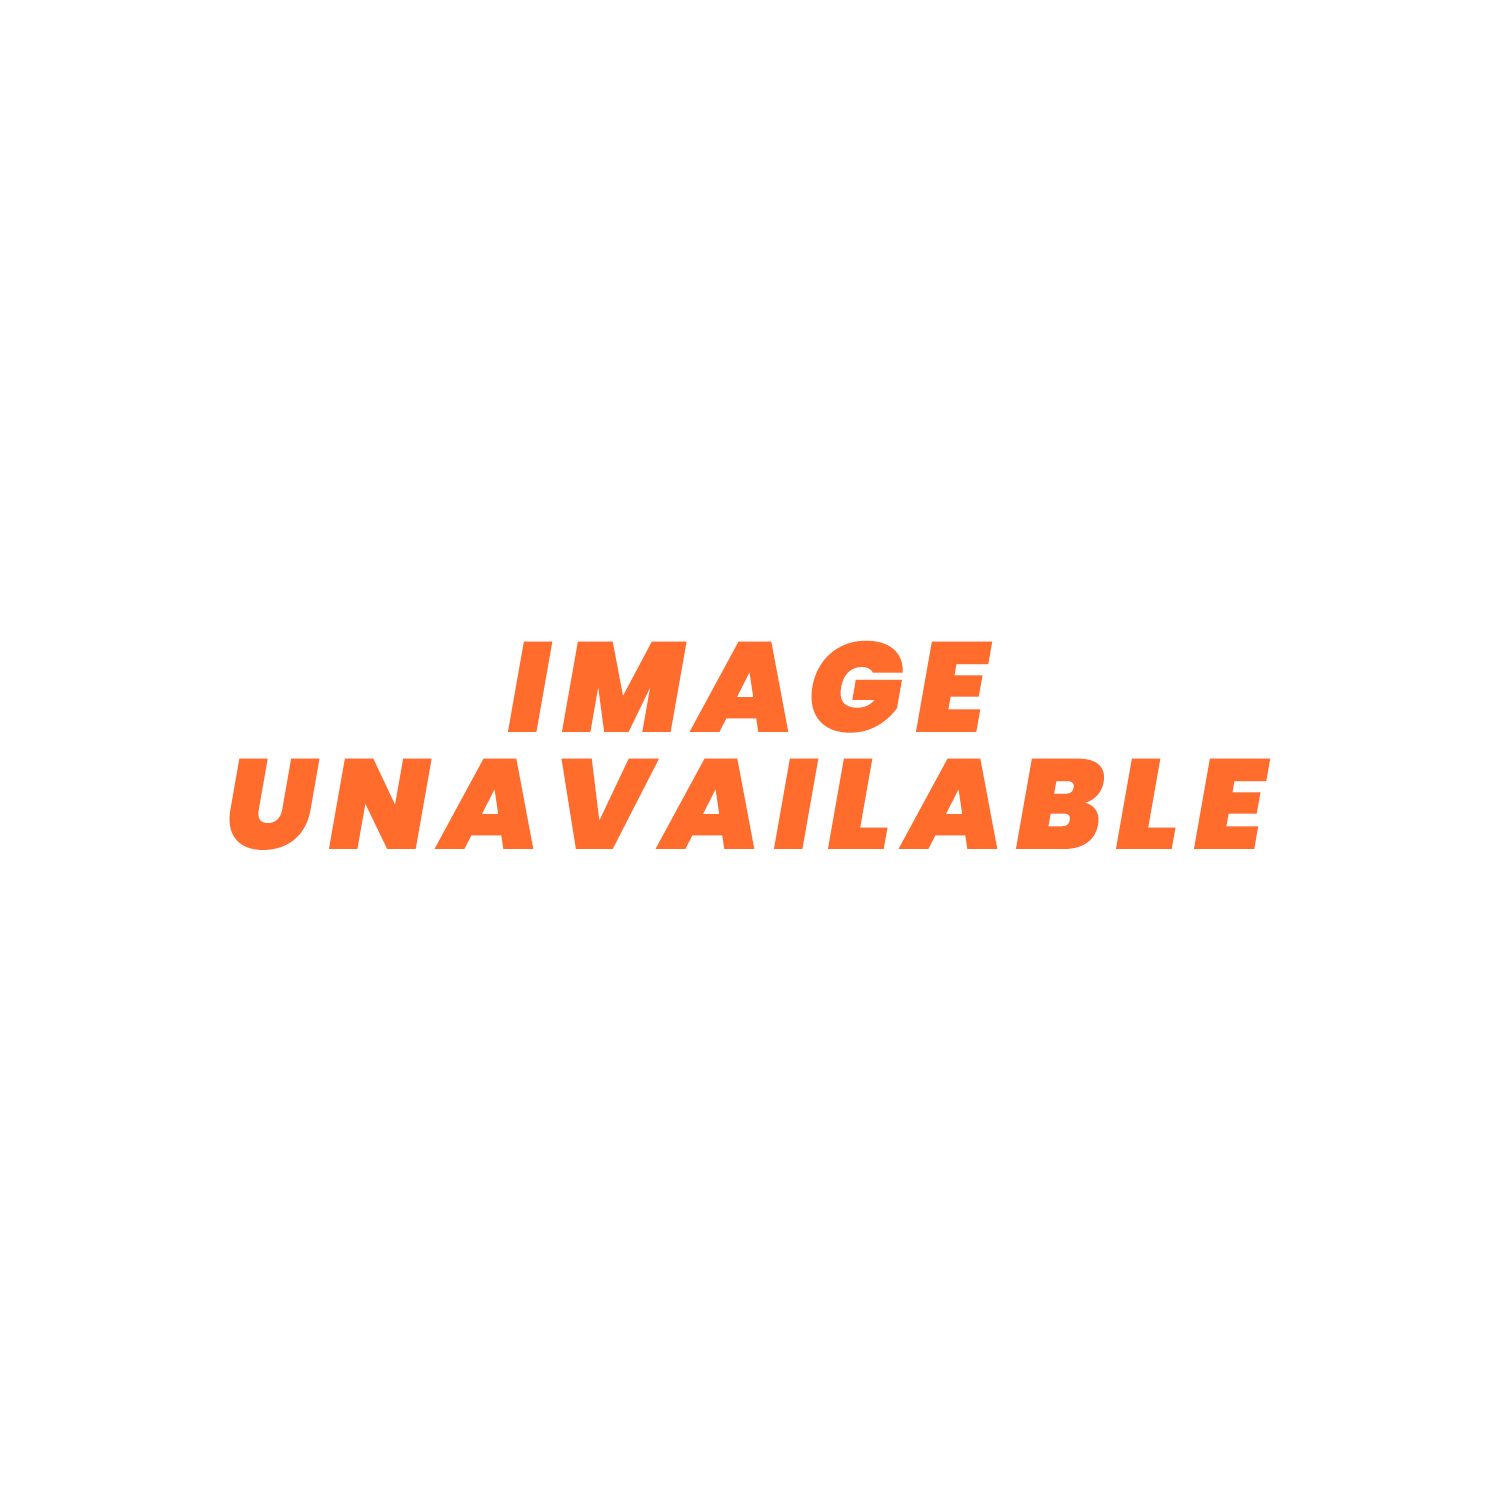 Standard blade fuse box with leds way fuses